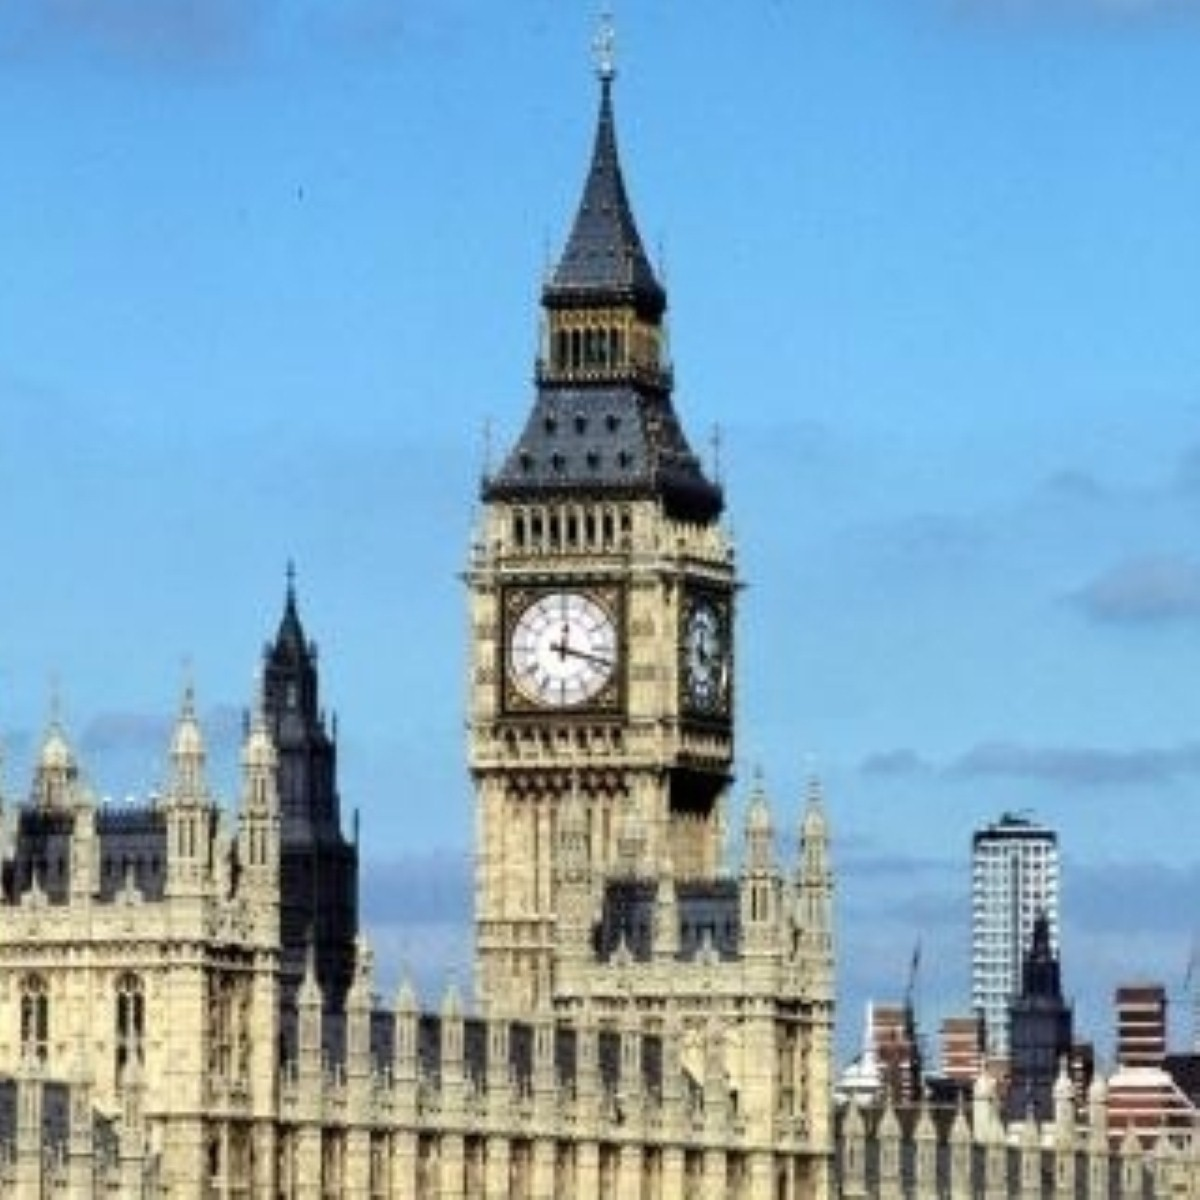 MPs debate their pay packets